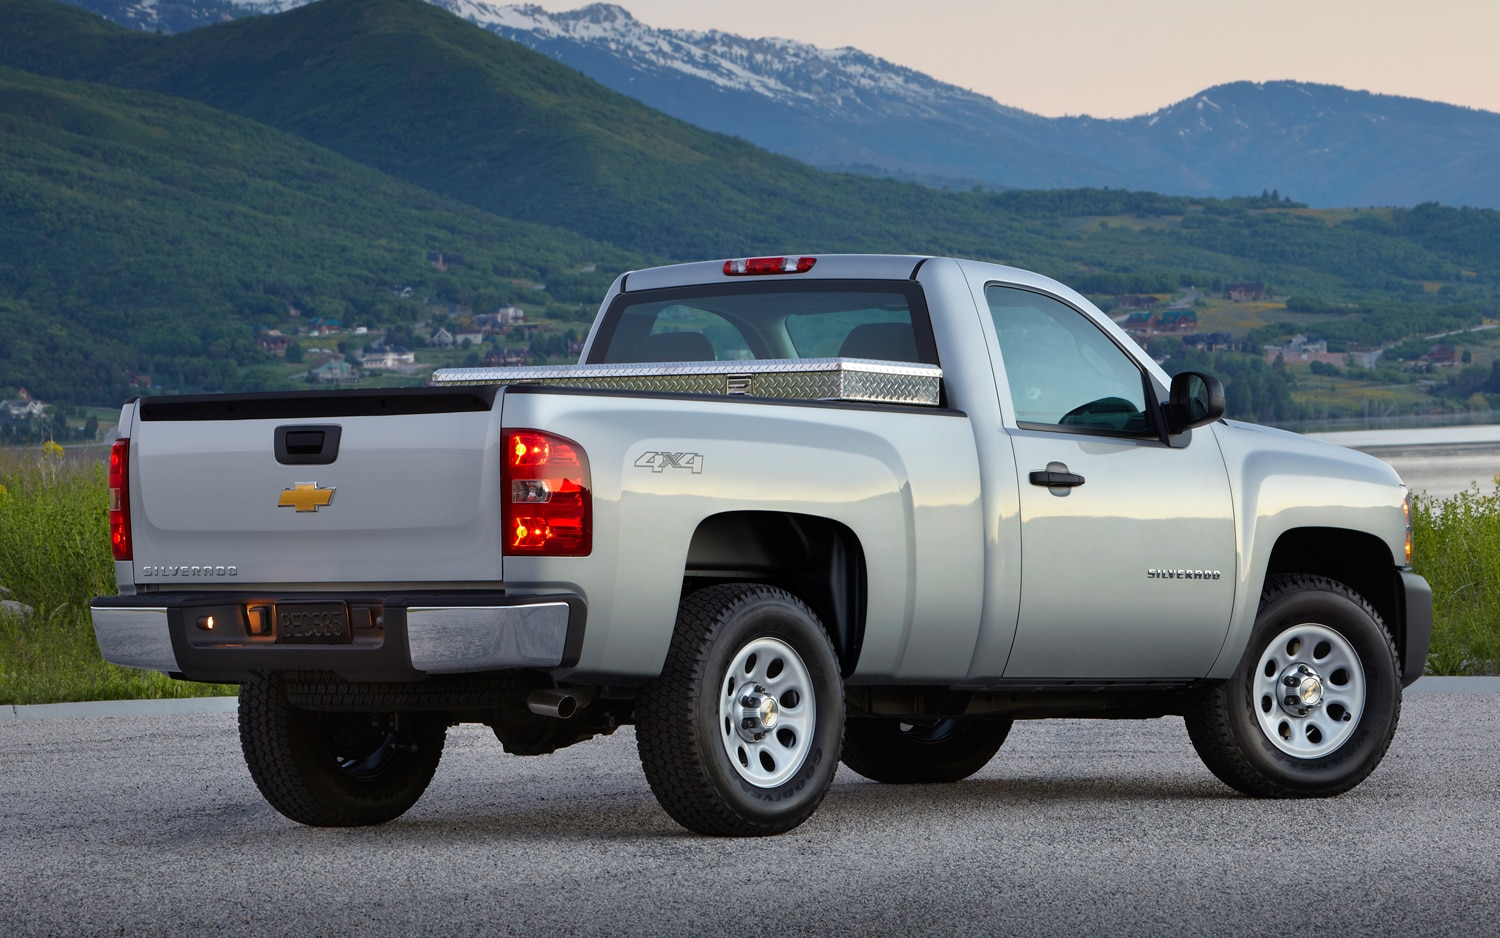 2013 Chevrolet Silverado Work Truck Rear